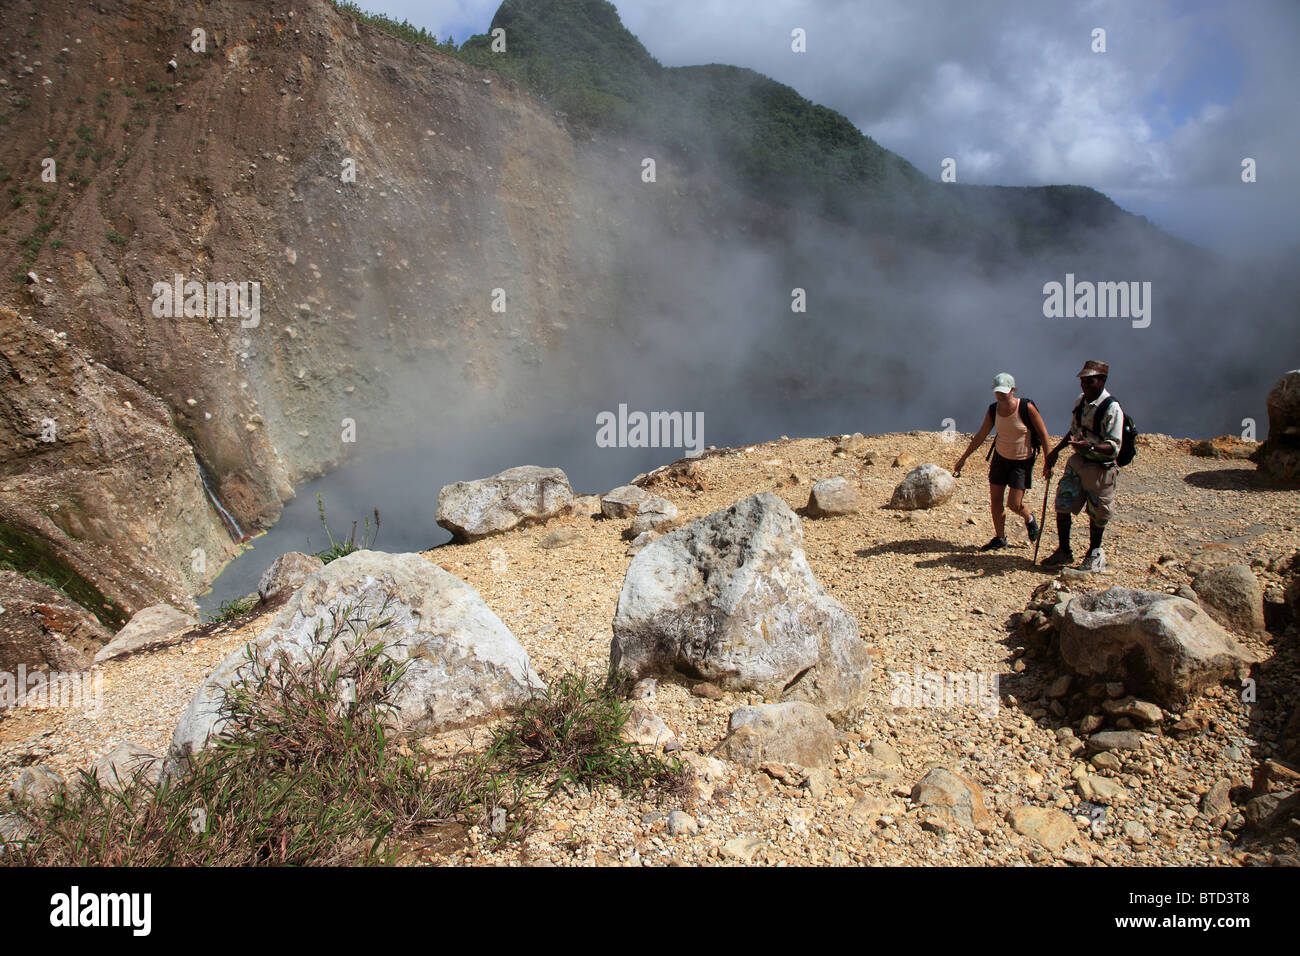 The Valley of Desolation and Boiling Lake, Dominica - Stock Image